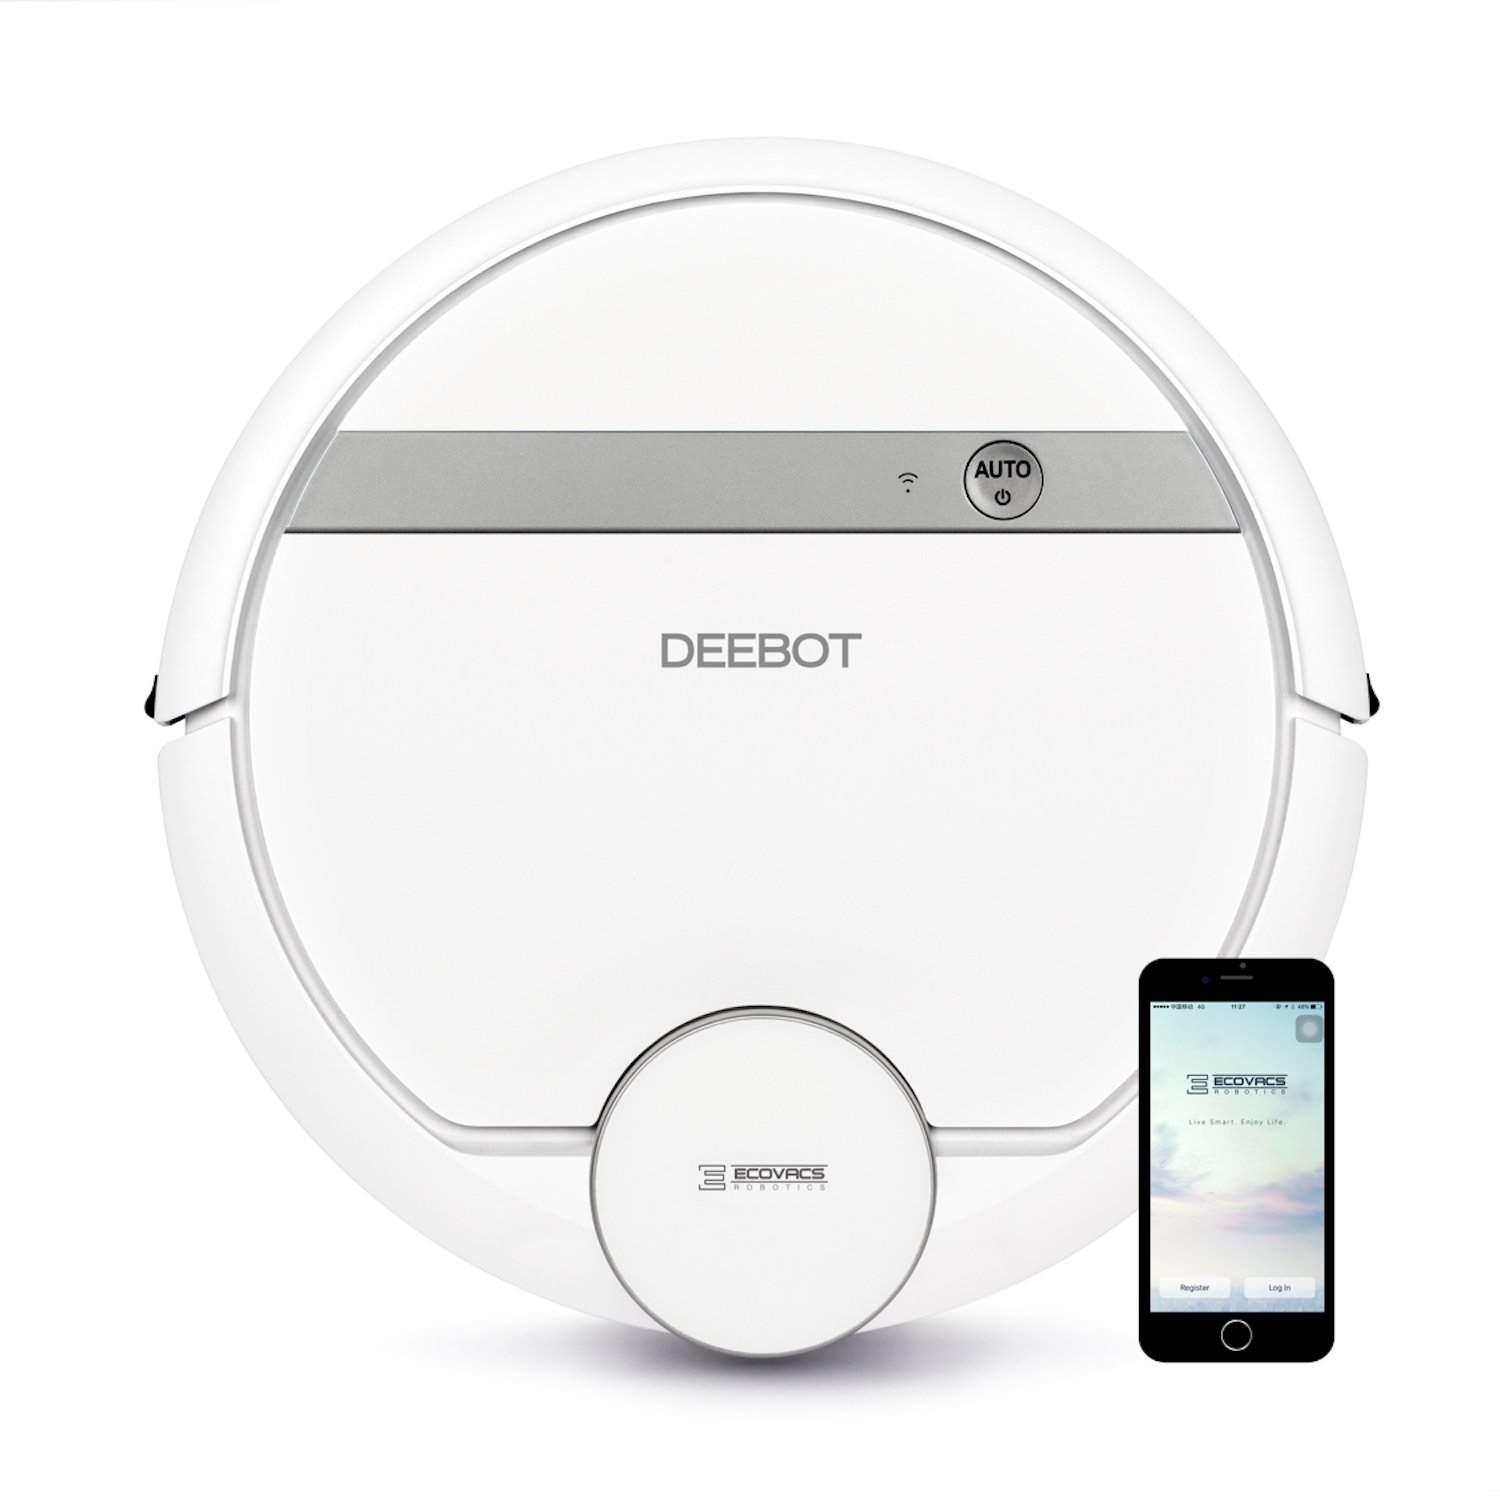 ECOVACS DEEBOT 900/901 Smart Robotic Vacuum for Carpet, Bare Floors, Pet Hair, with Mapping Technology, Higher Suction Power, Wifi Connected and Compatible with Alexa and Google Assistant